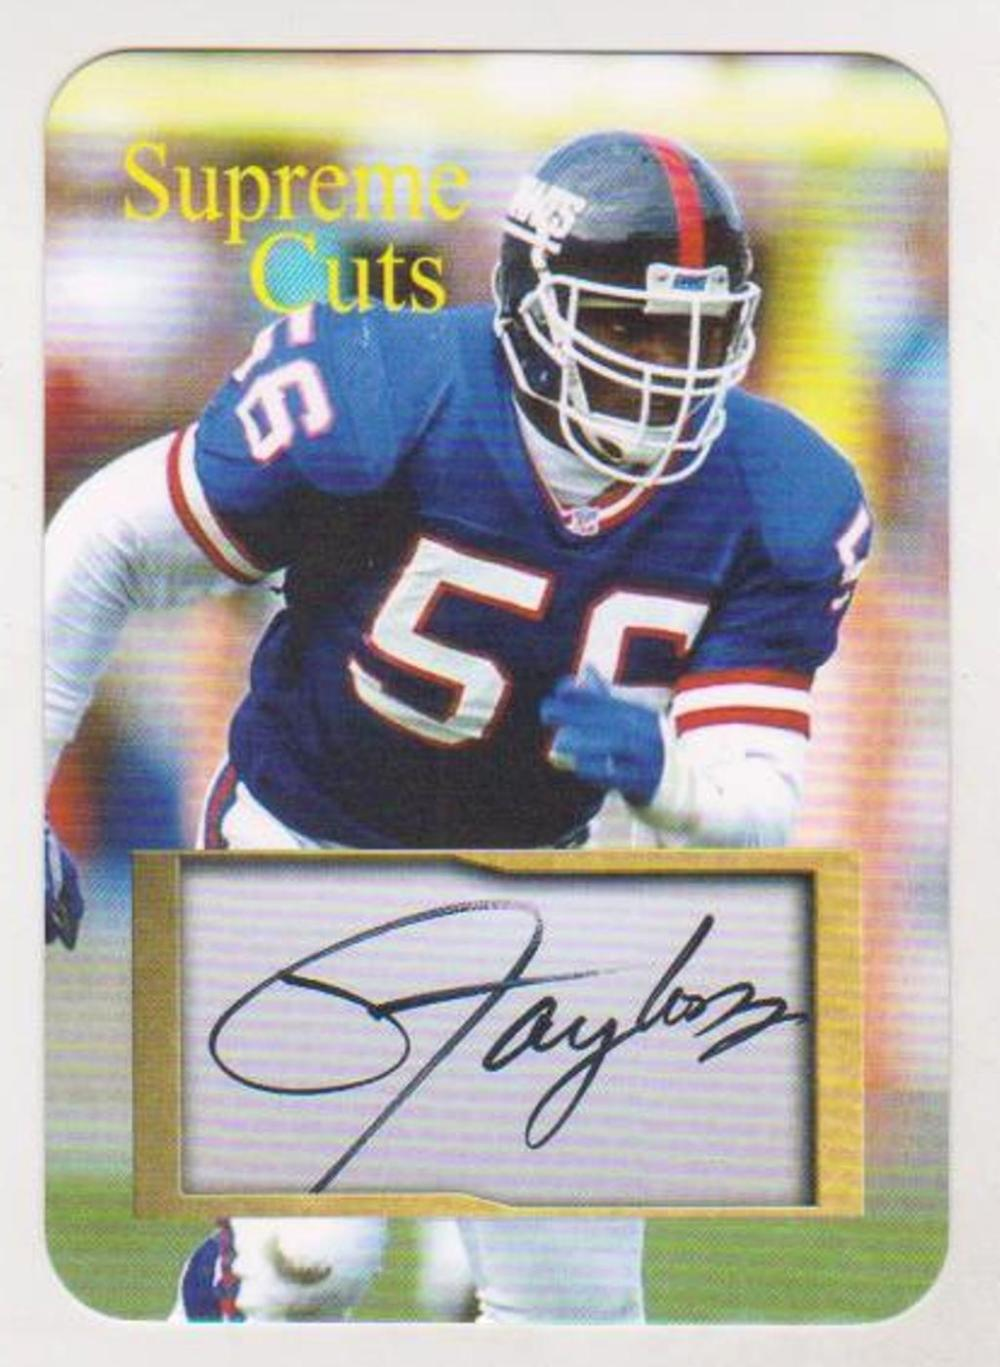 #13/50 Produced - Lawrence Taylor Supreme Cuts Facsimile Autograph Die Cut Limited Edition Card